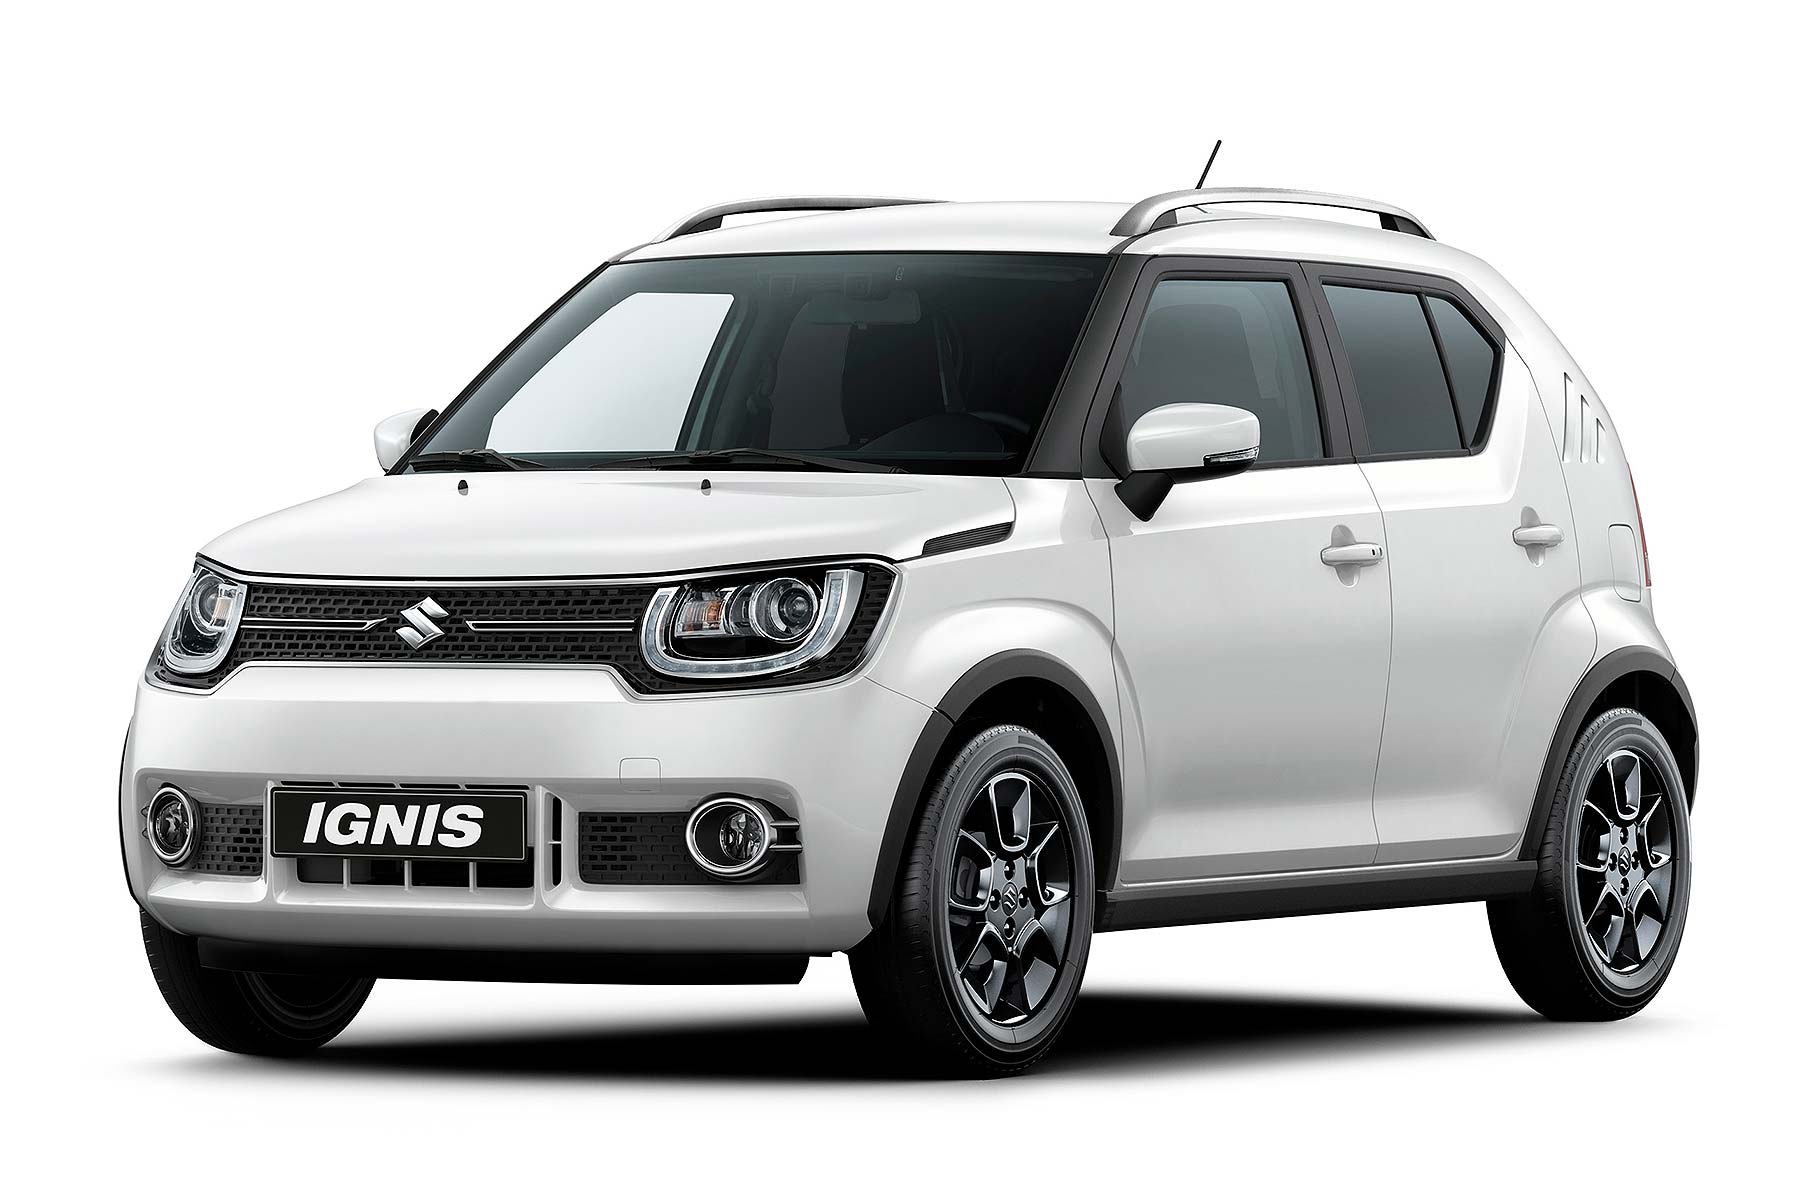 suzuki ignis revised s cross confirmed for paris 2016 motoring research. Black Bedroom Furniture Sets. Home Design Ideas